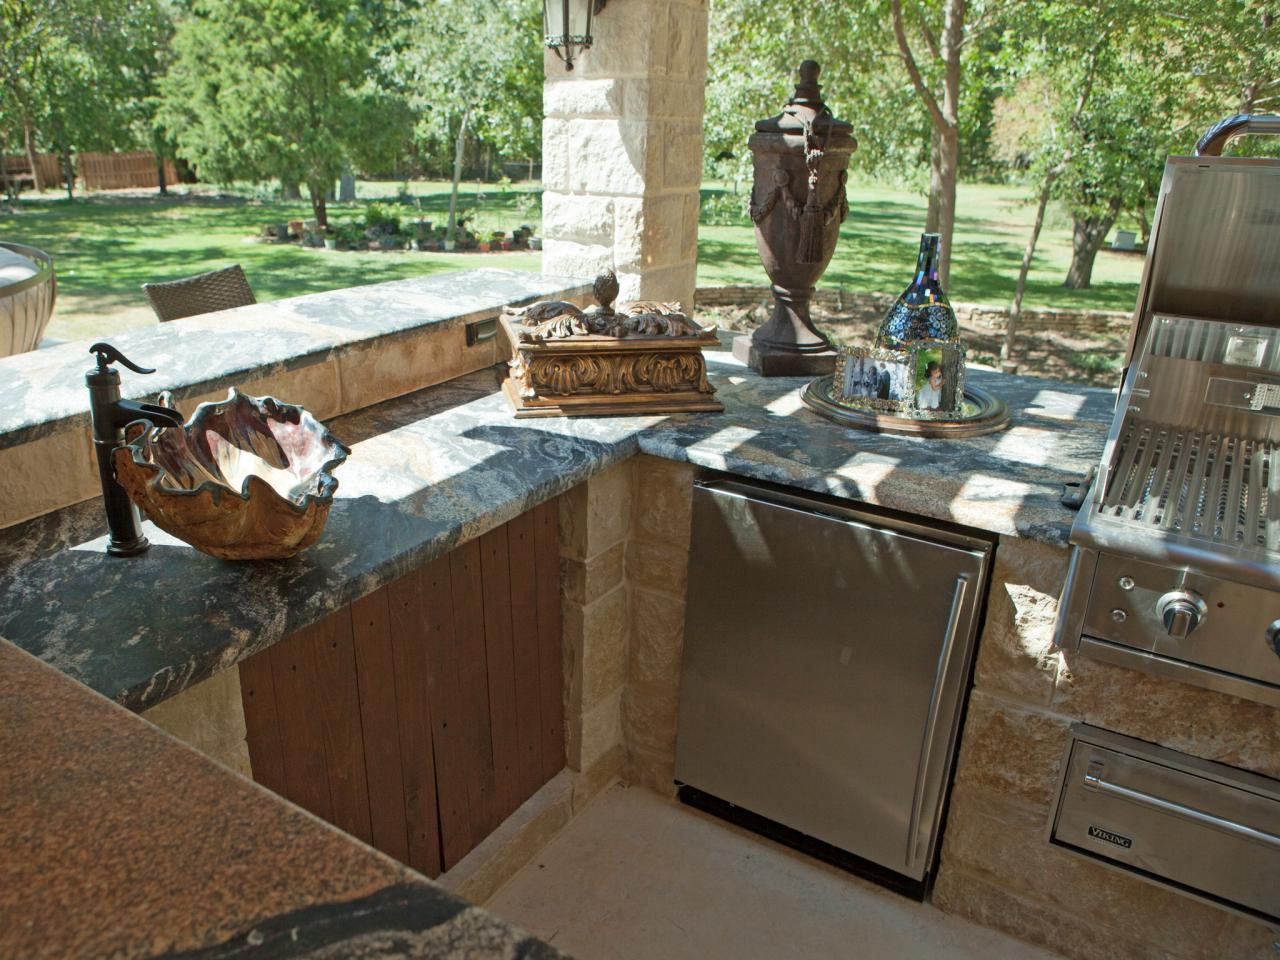 Outdoor Kitchen Designs Classy Outdoor Kitchen Design Ideas Pictures Tips & Expert Advice  Hgtv Design Inspiration